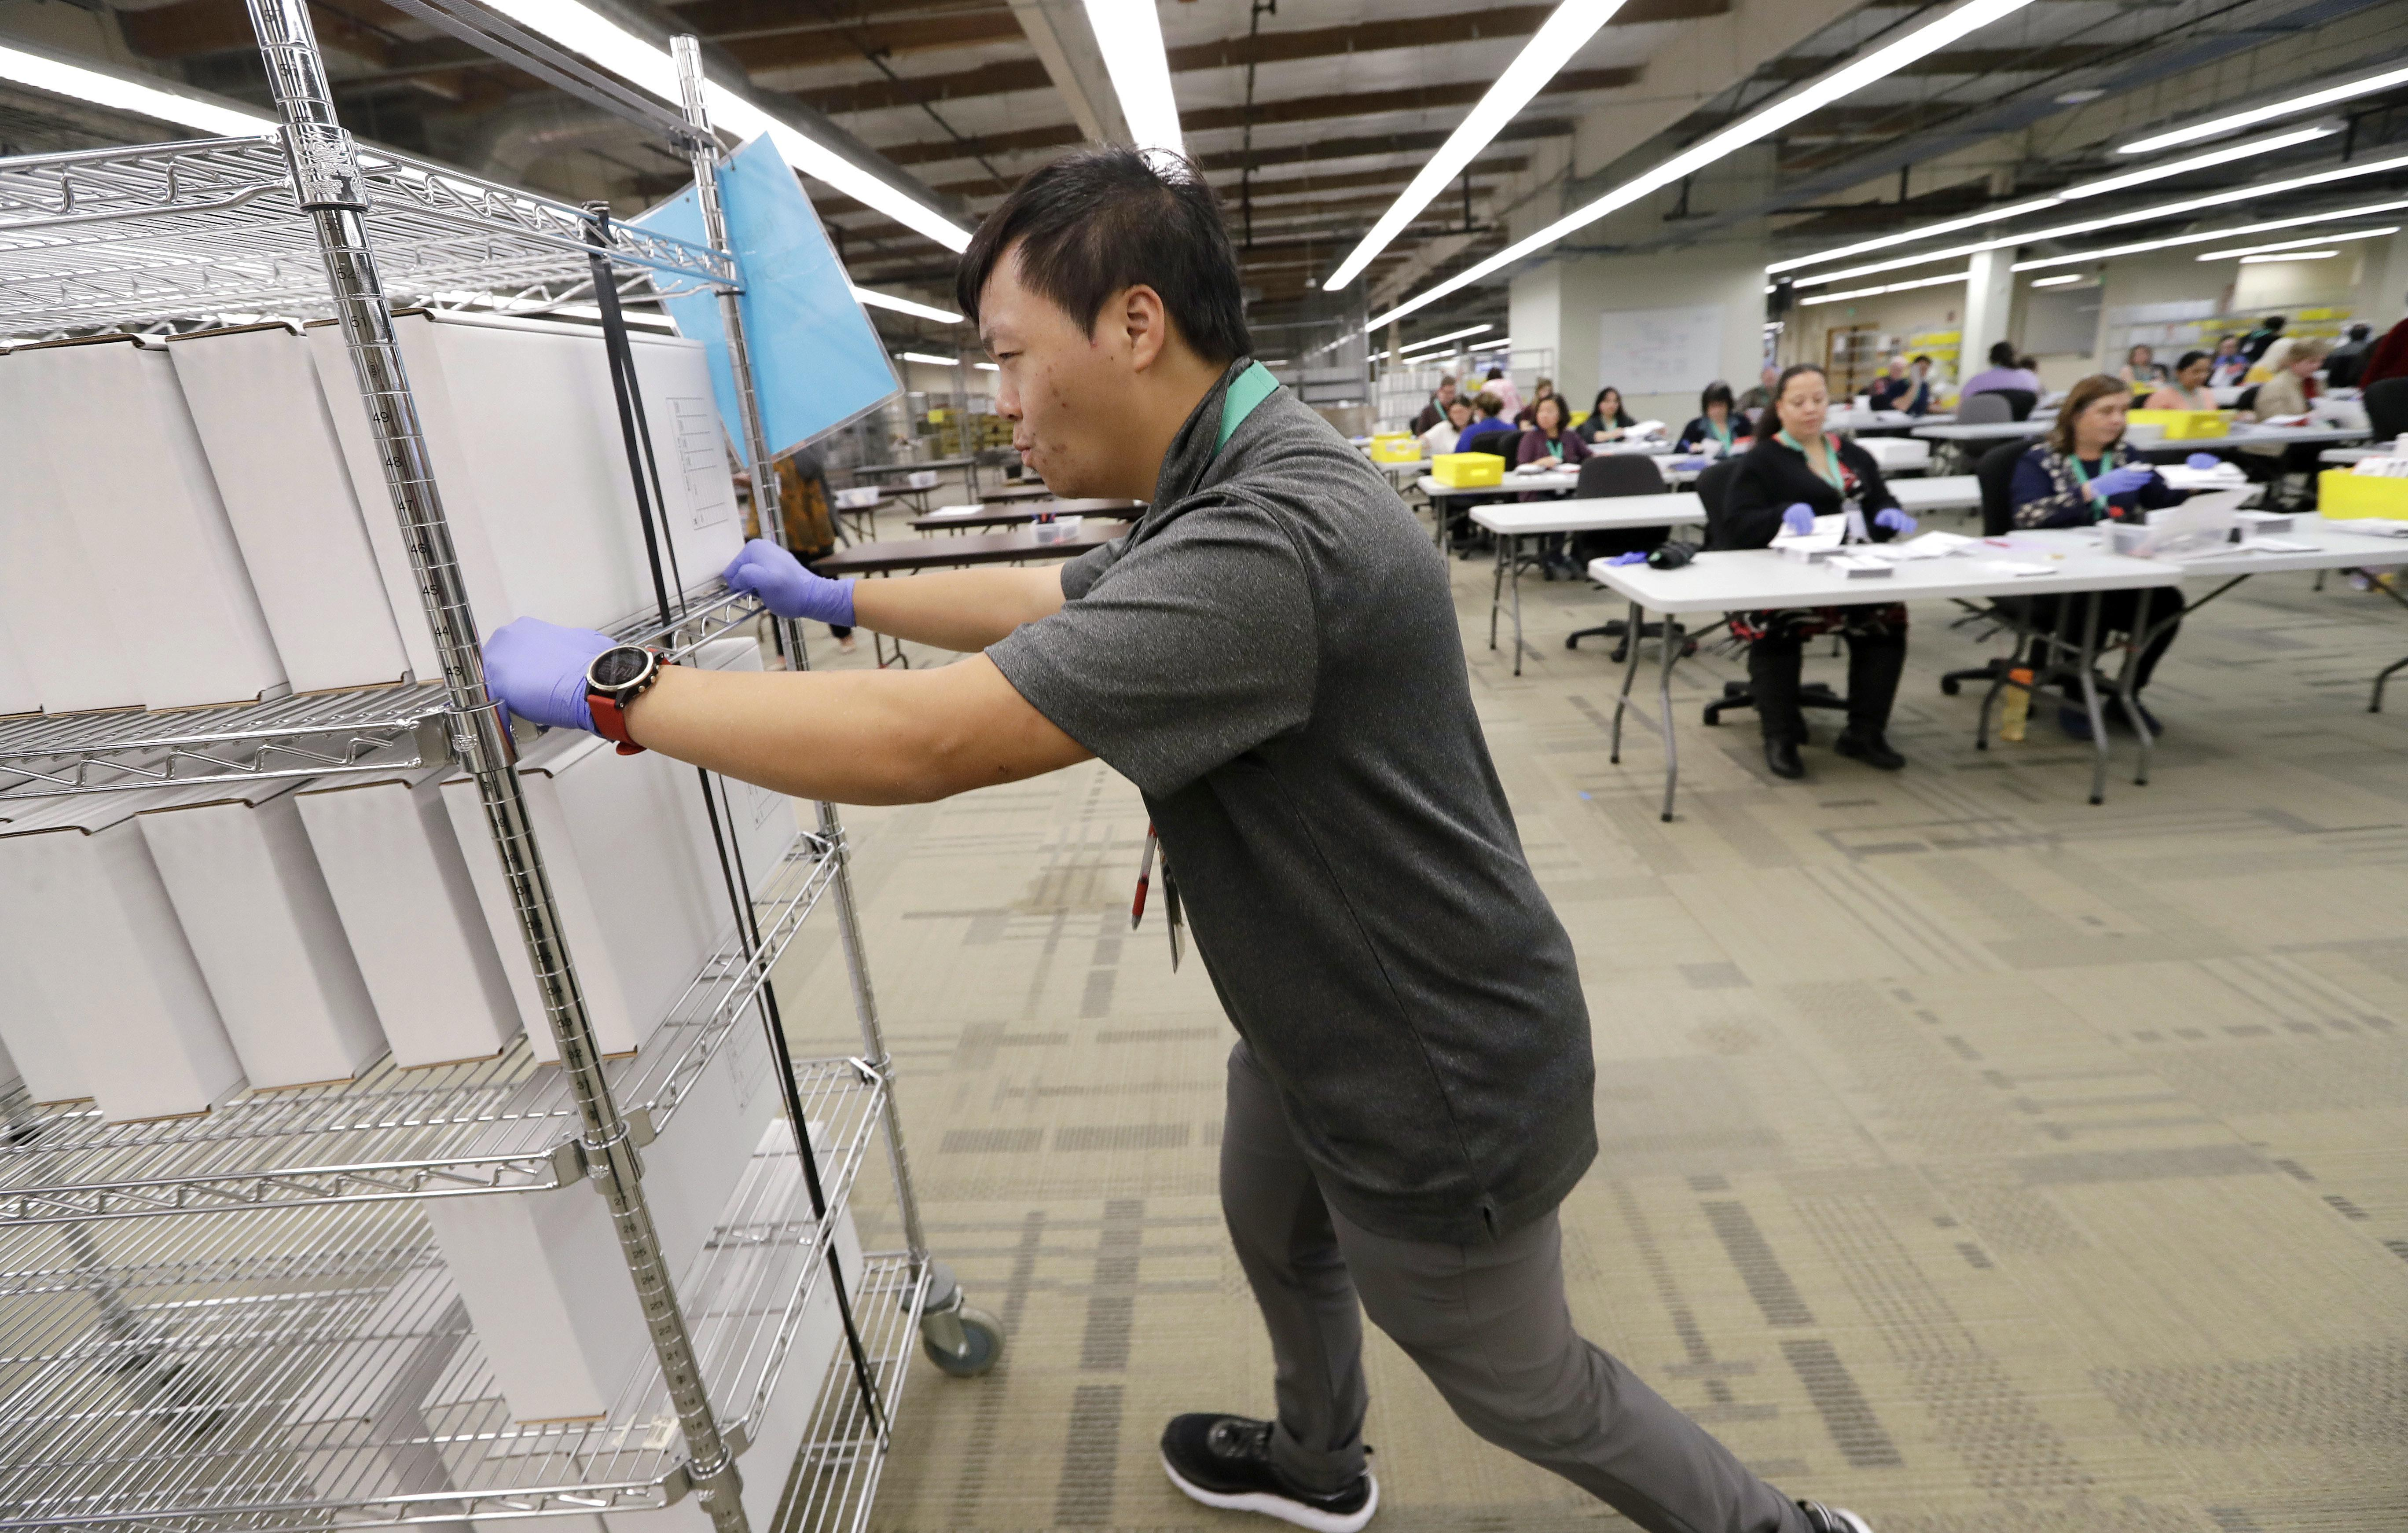 Washington saw most ballots ever cast in midterm election ...